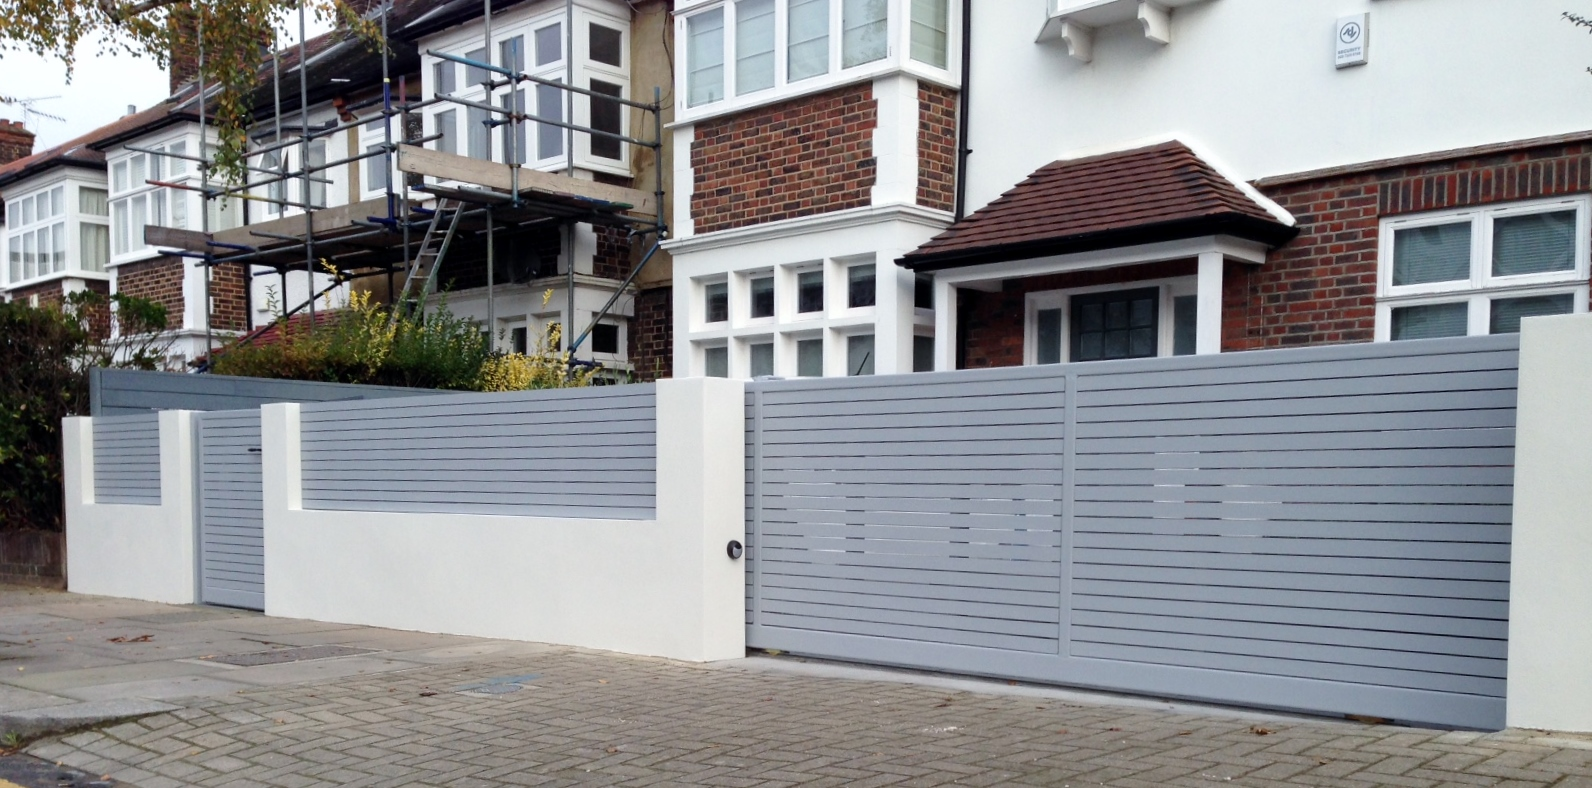 front boundary wall screen automated electronic gate installation grey wooden fence bike store modern garden design balham clapham london (17)